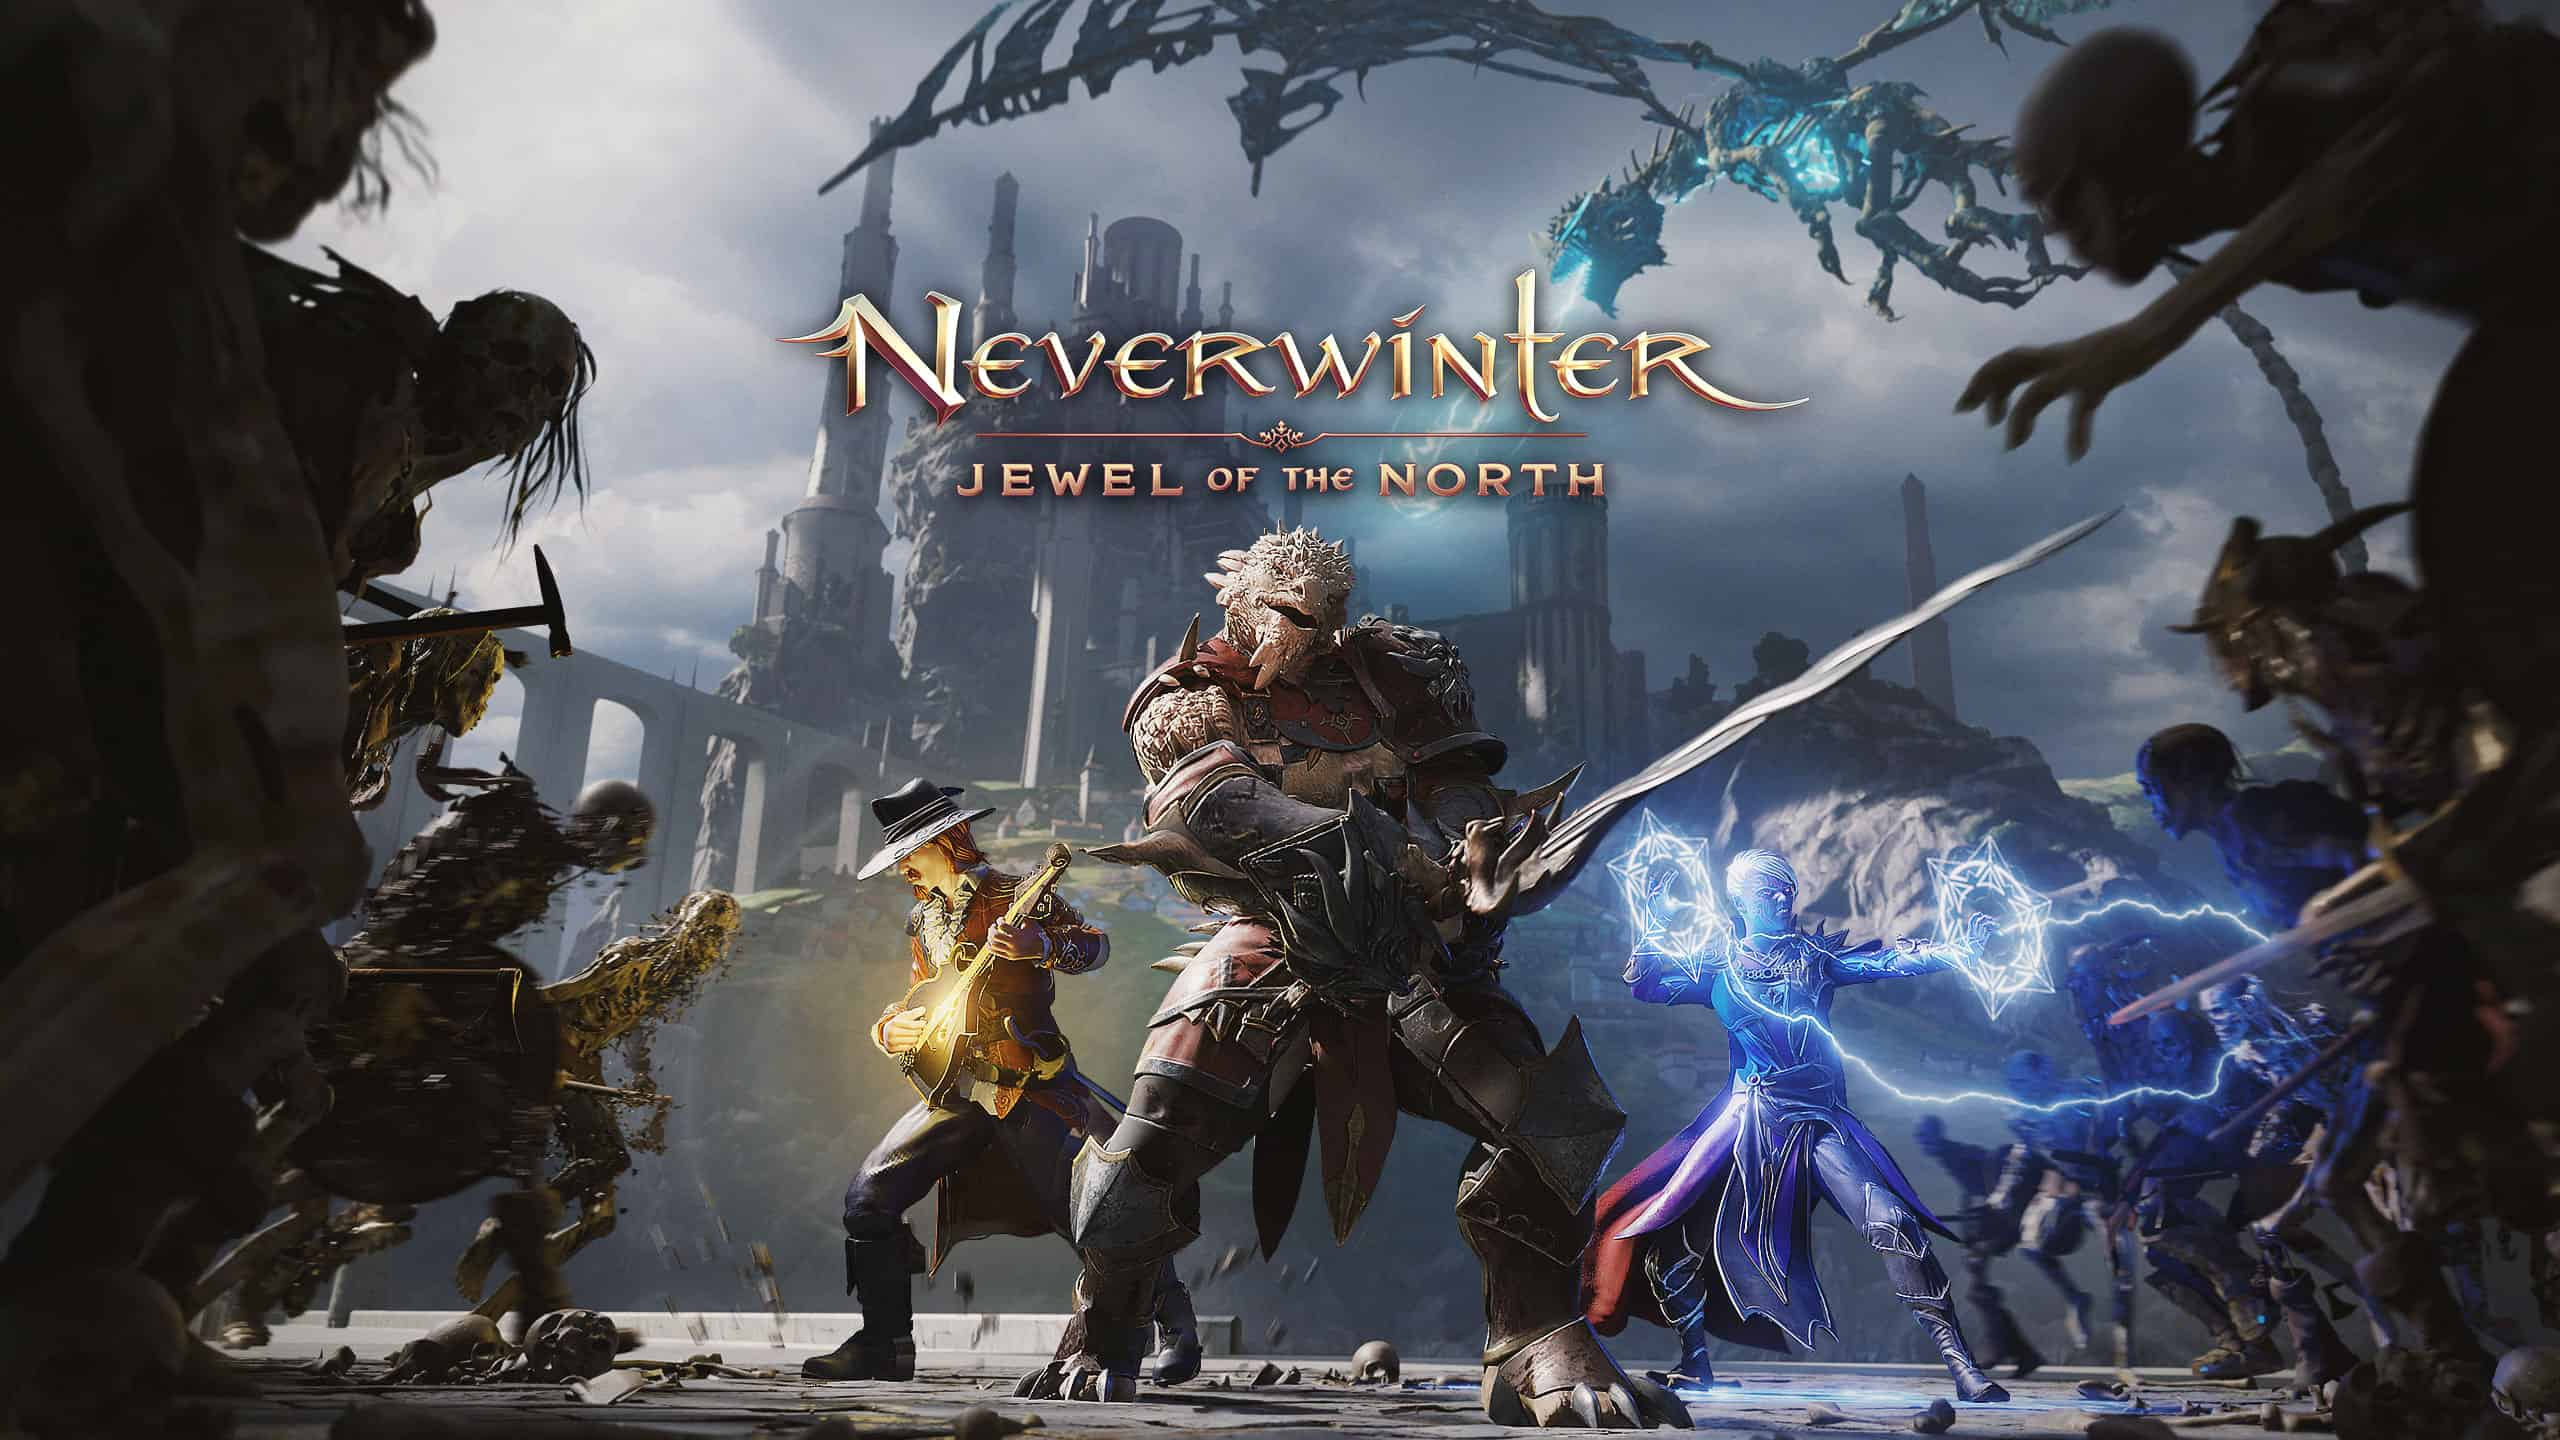 Neverwinter Release Mod 21 Jewel Of The North On Console Along With New Cinematic Trailer 4